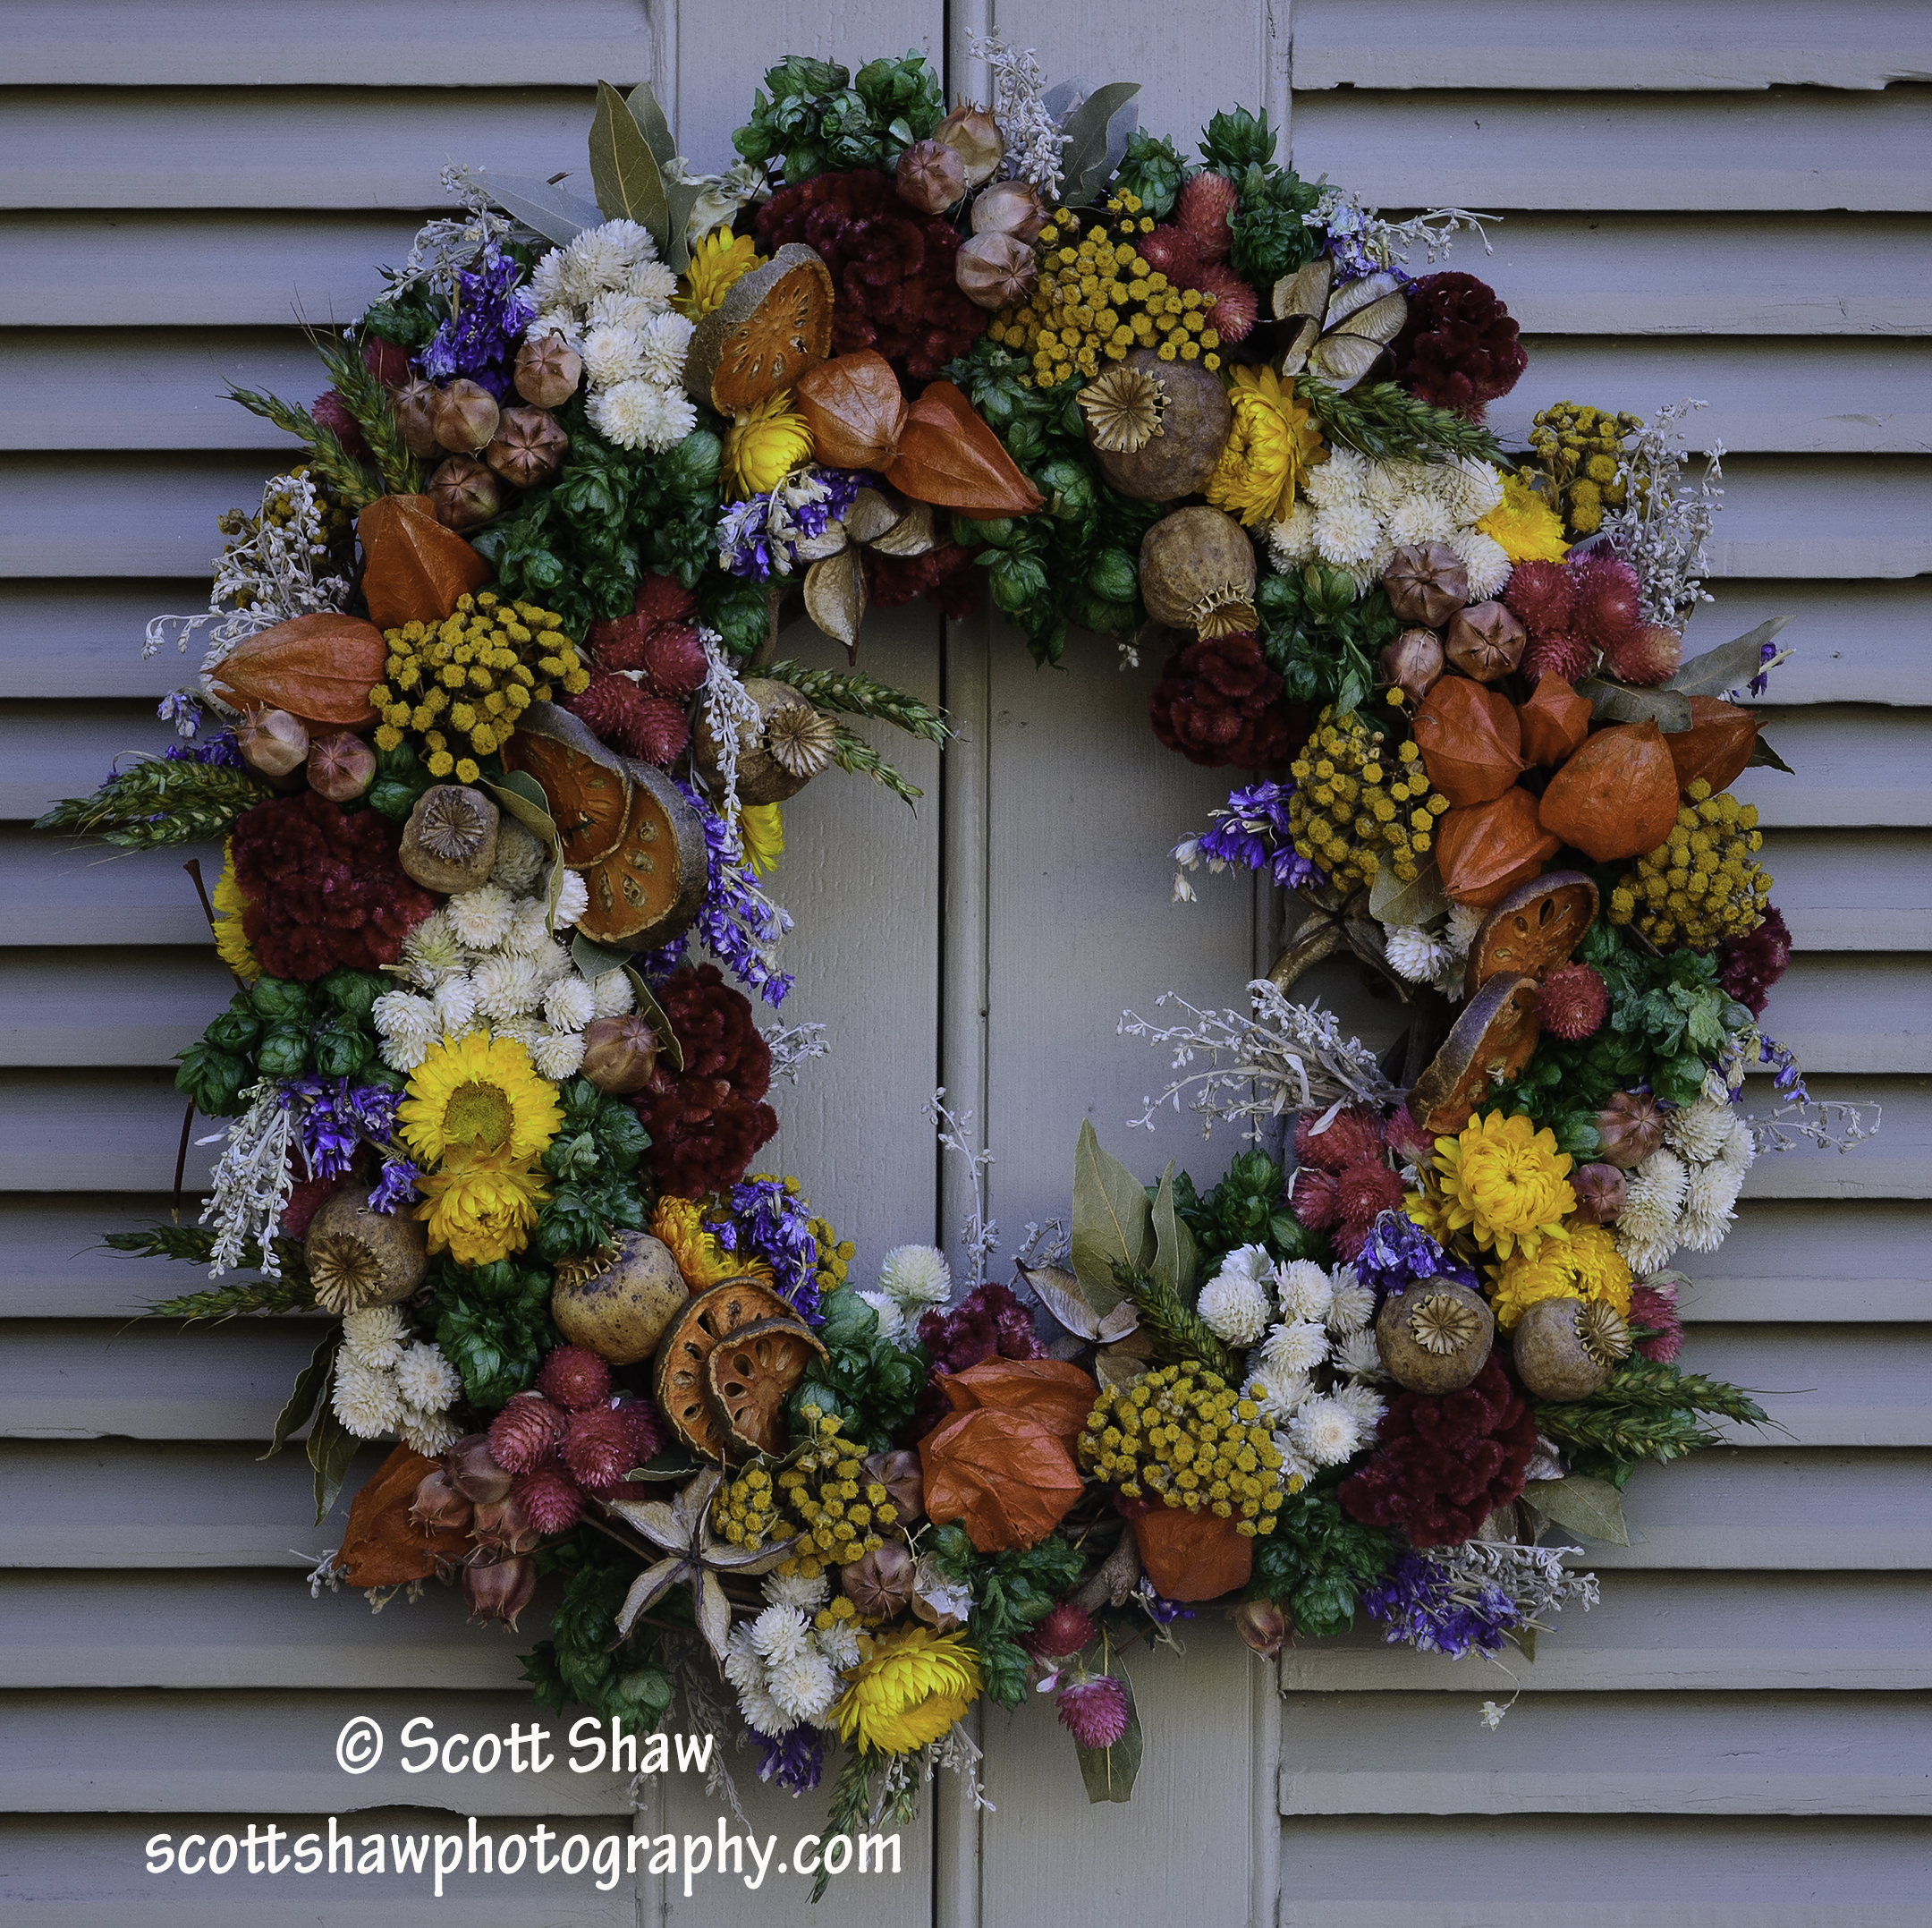 Williamsburg Christmas Wreath #1